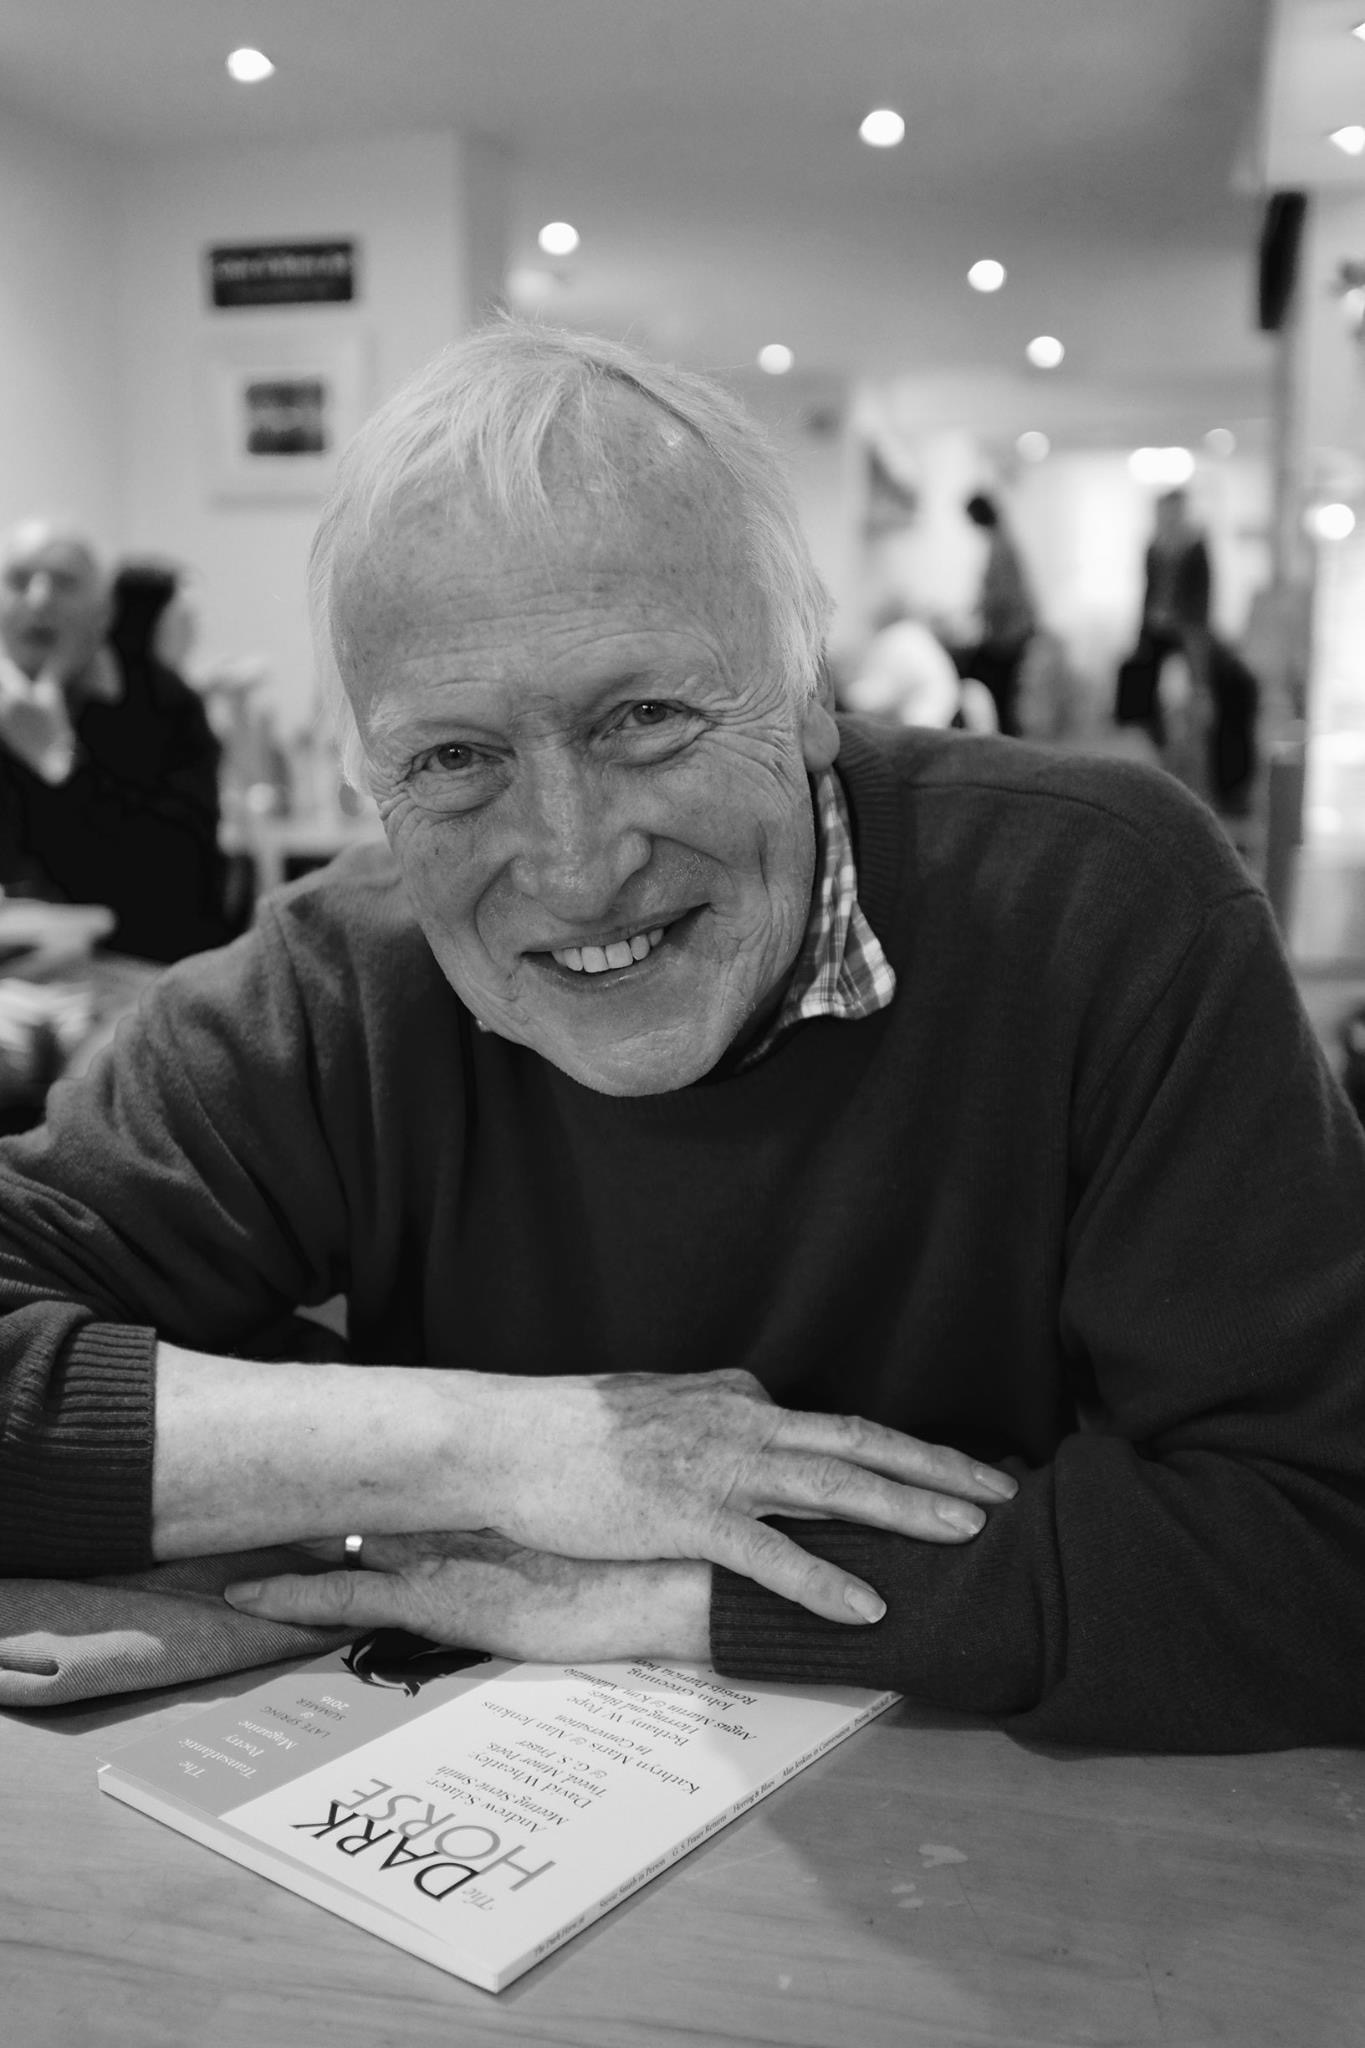 Photo of Andrew leaning forward over a table, his arms folded on the surface. A big smile, white teeth, no glasses. He is warring a casual pullover and a collared t-shirt.